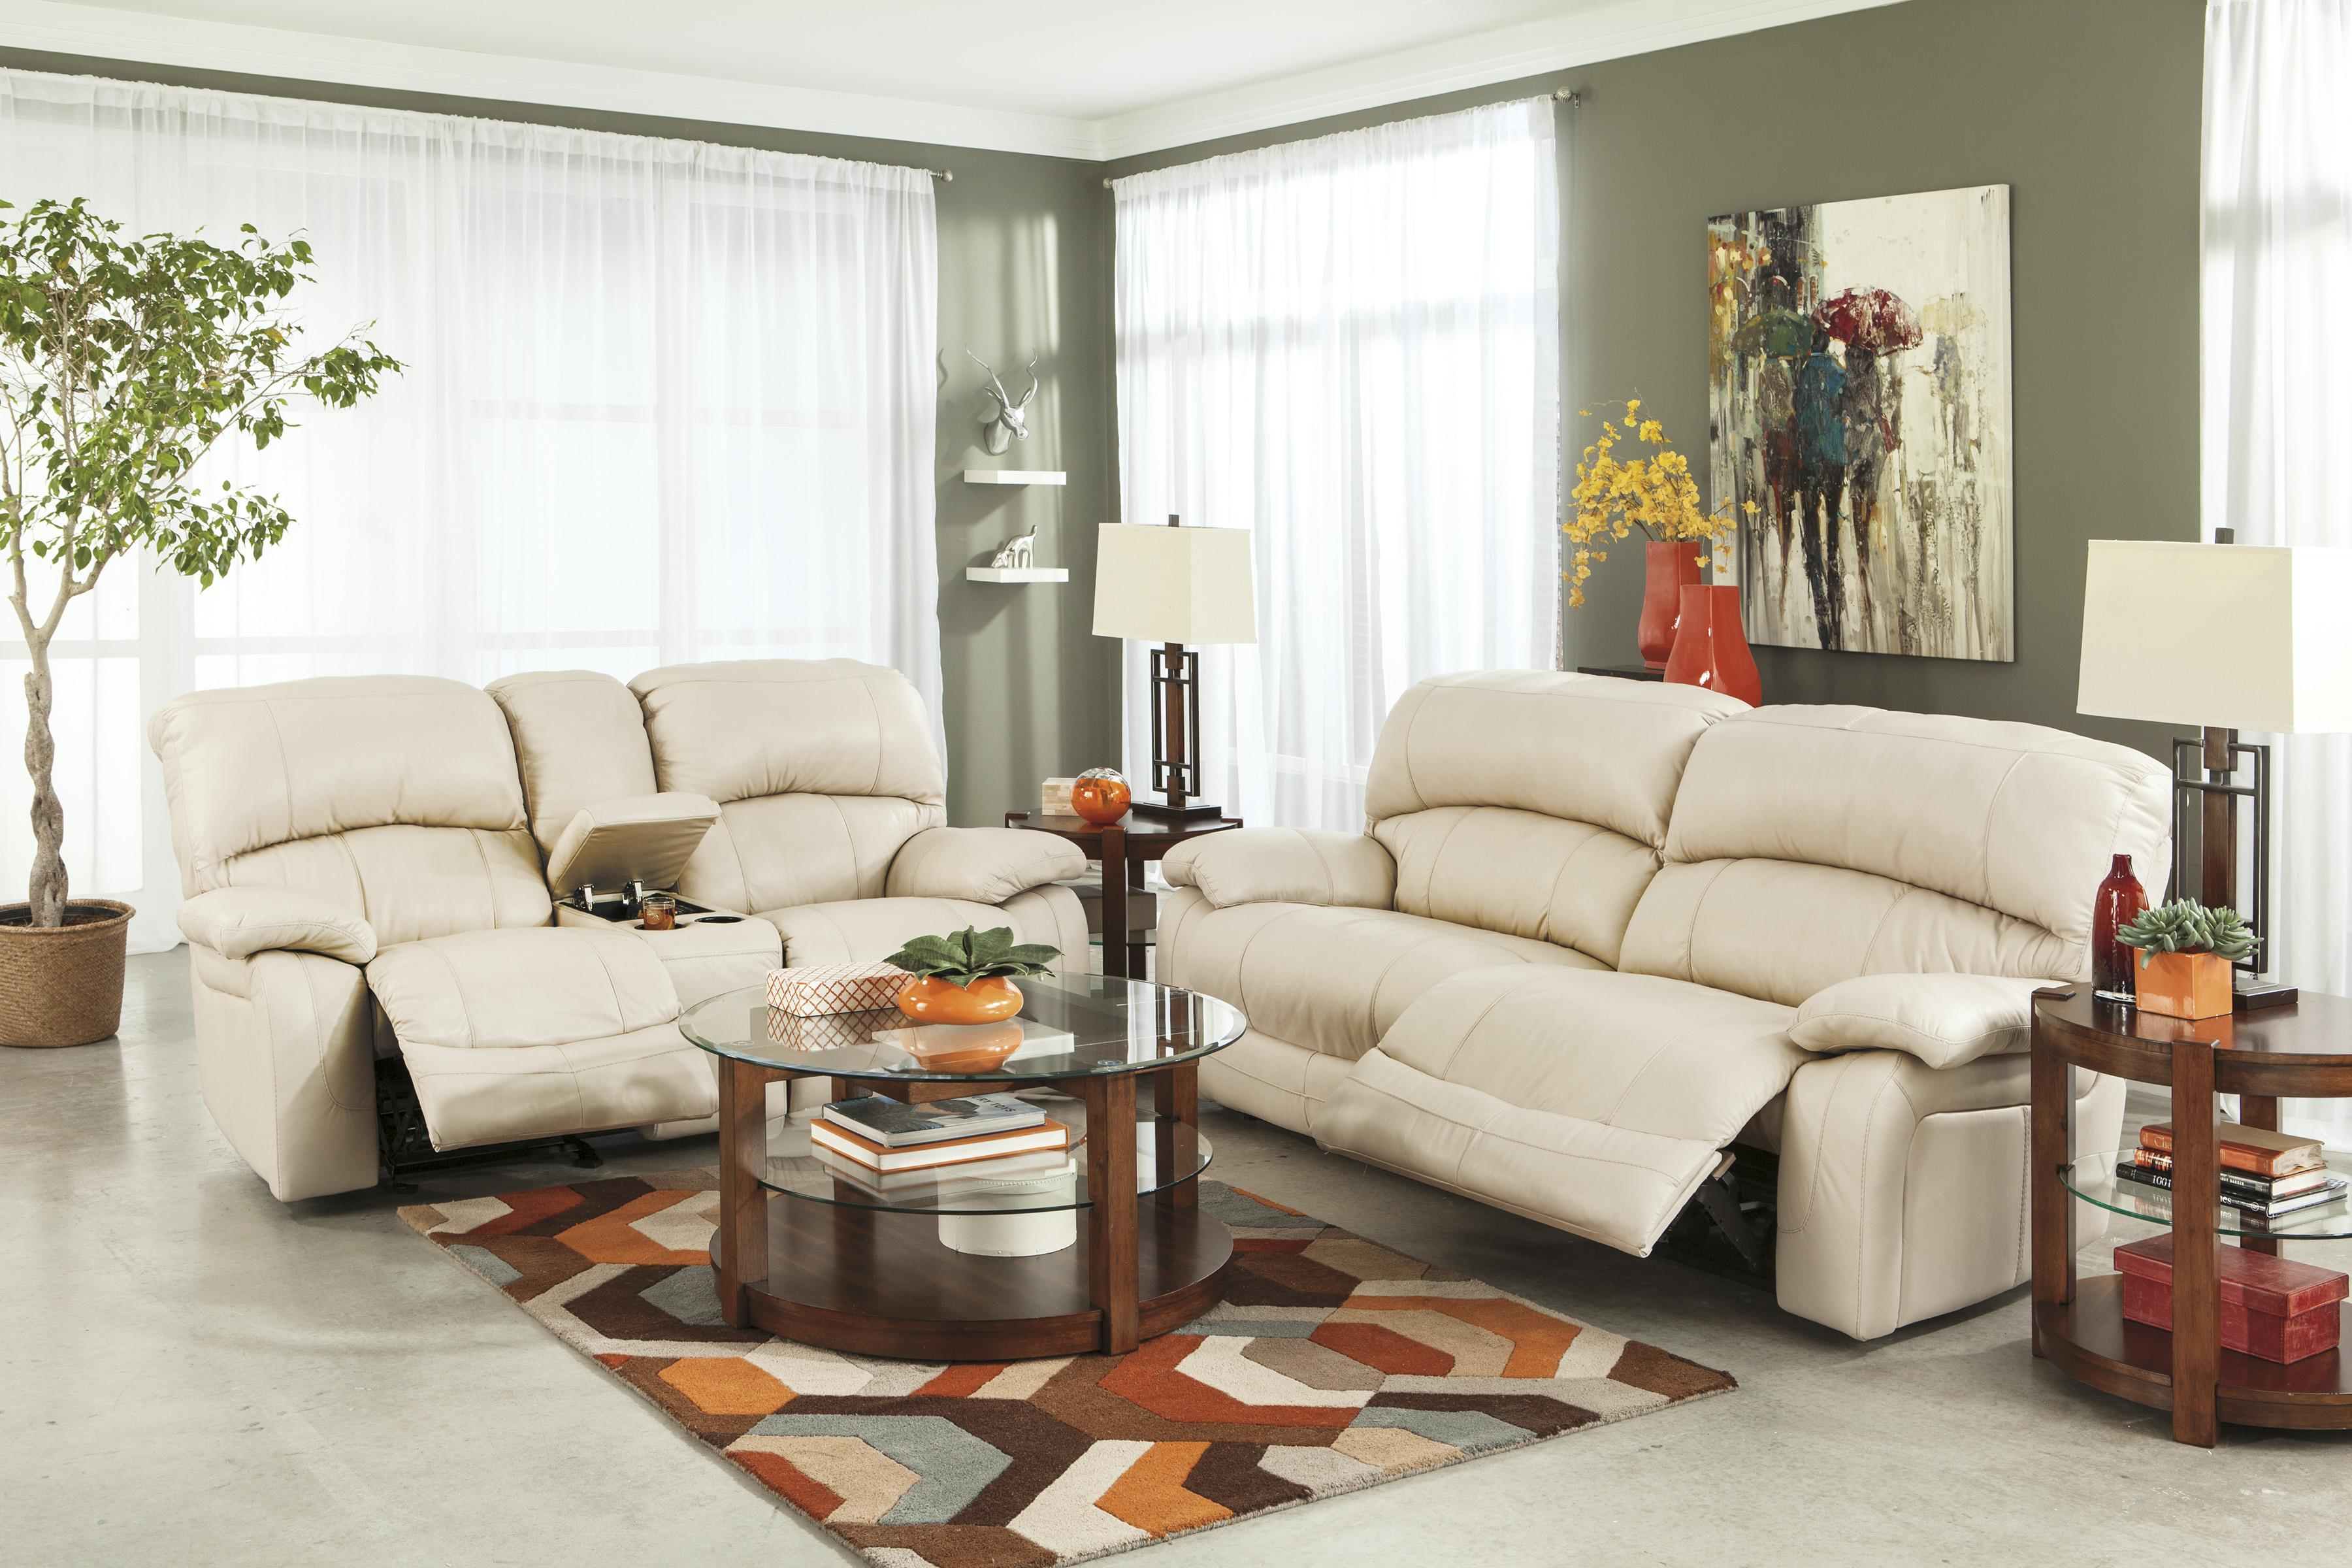 Signature Design by Ashley Damacio - Cream Reclining Living Room Group - Item Number: U98201 Living Room Group 1